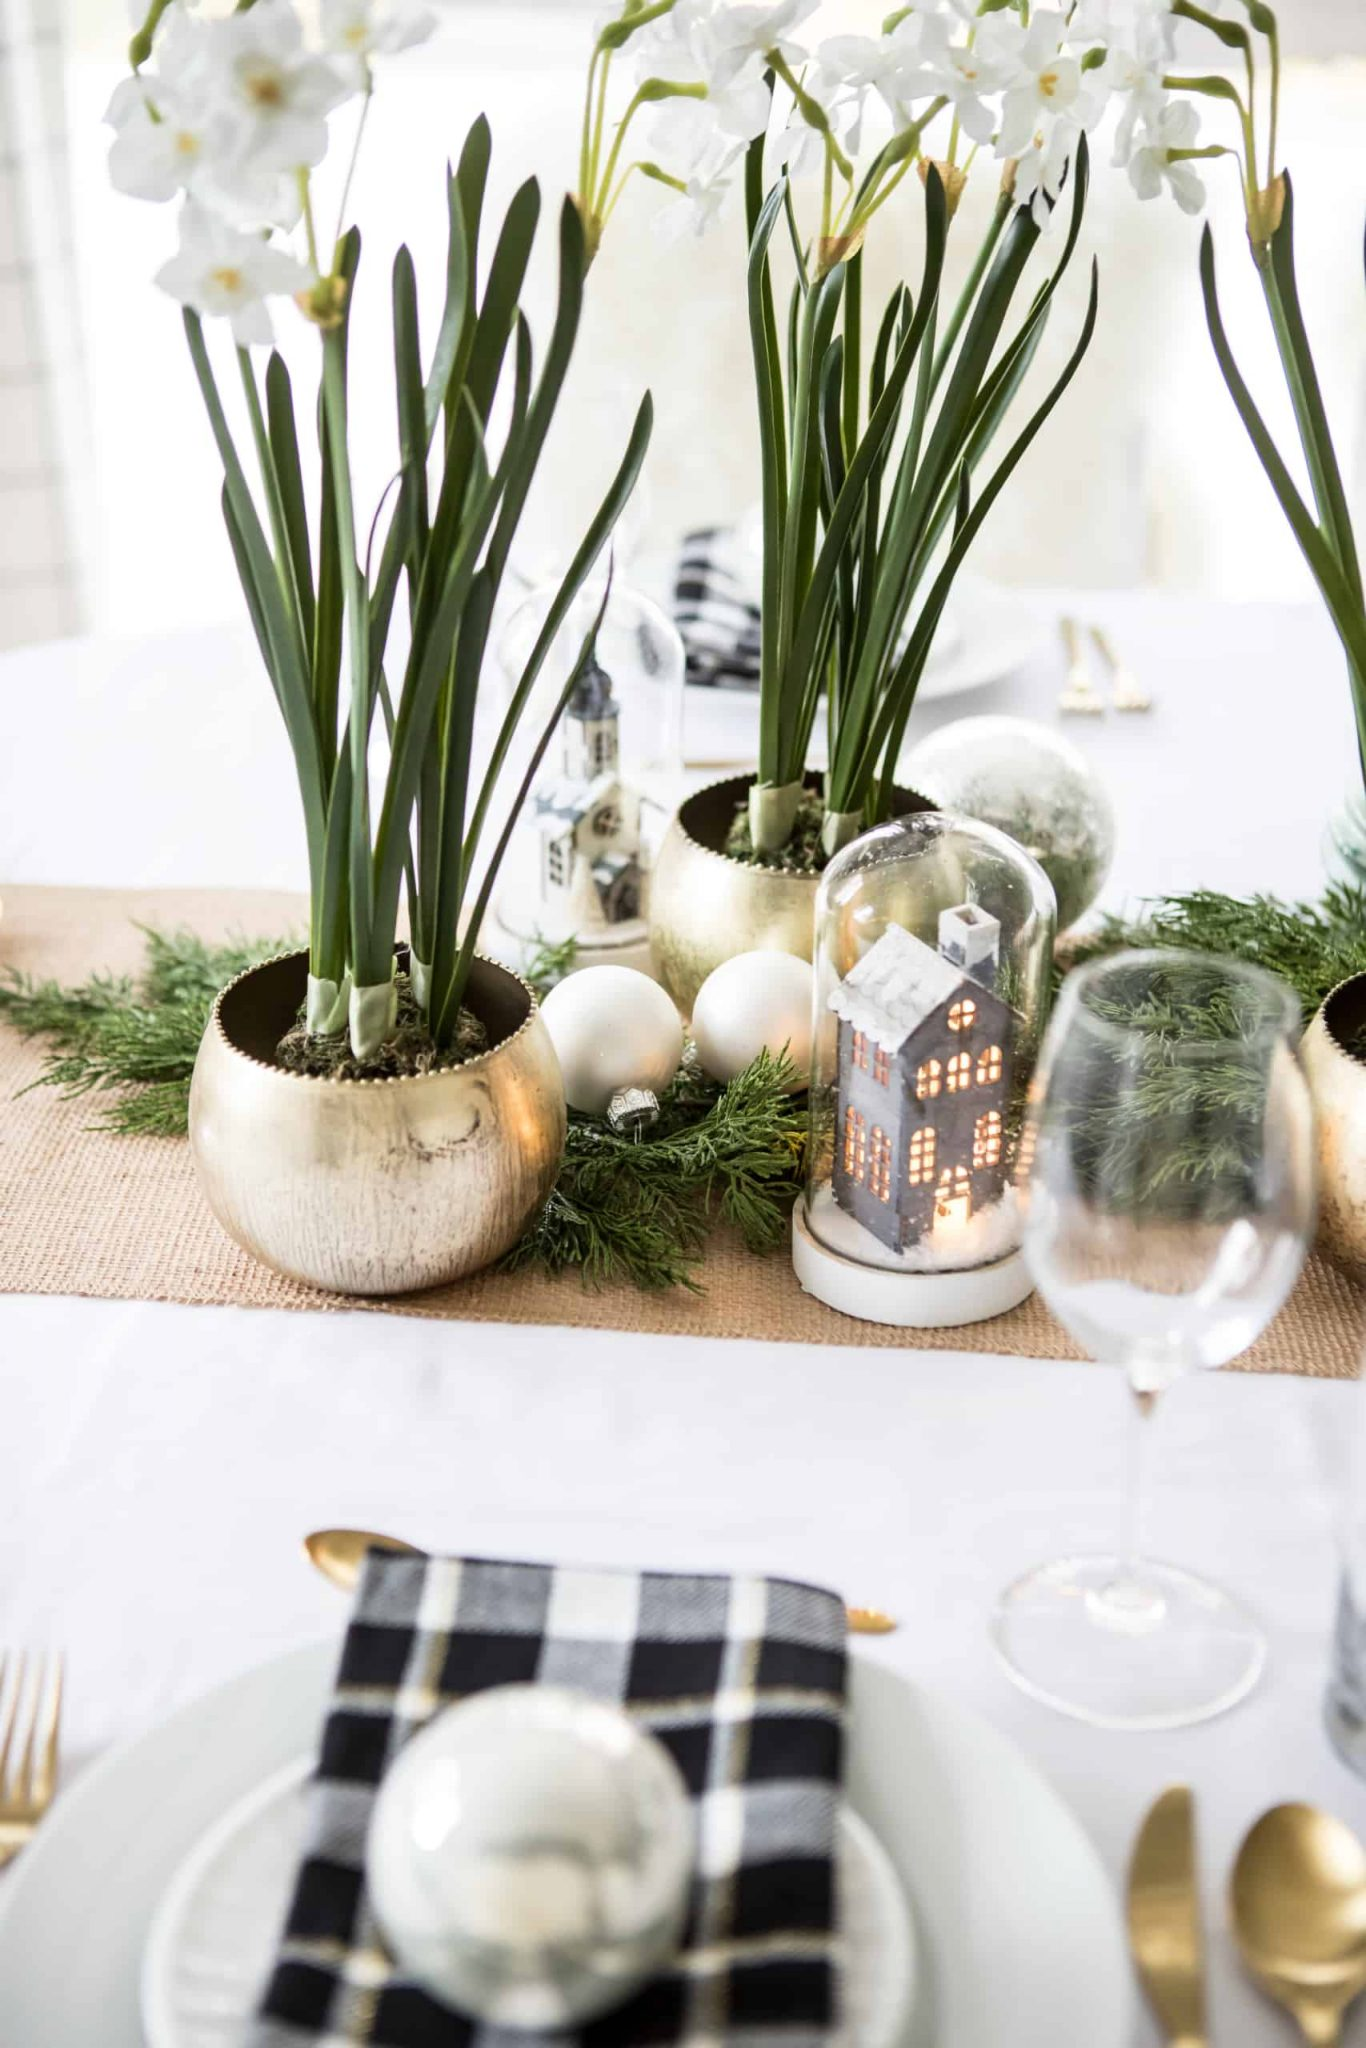 Potted plants on the dining room table